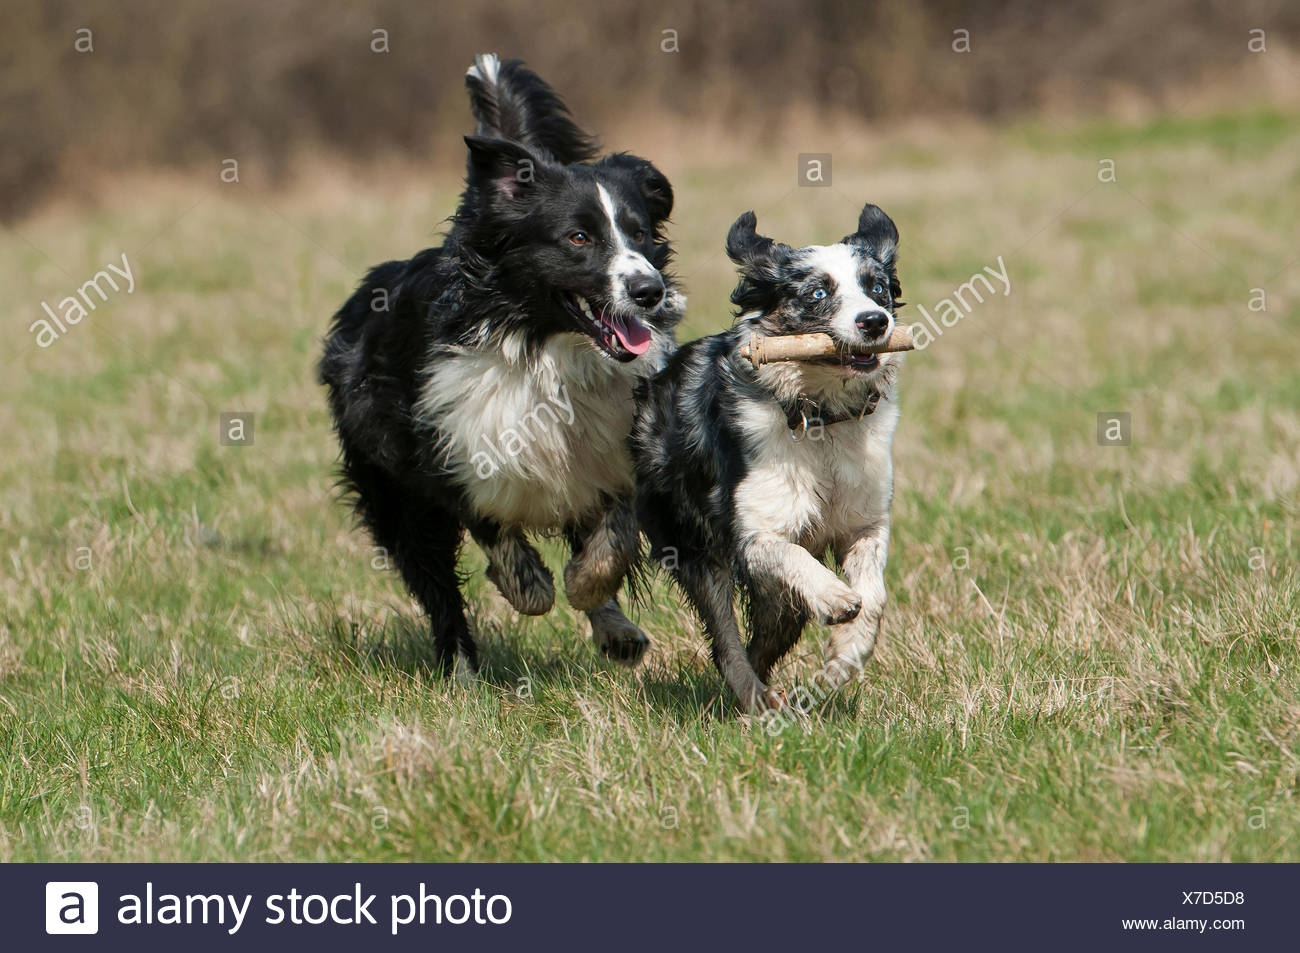 Miniature Collie Stockfotos Und Bilder Kaufen Alamy